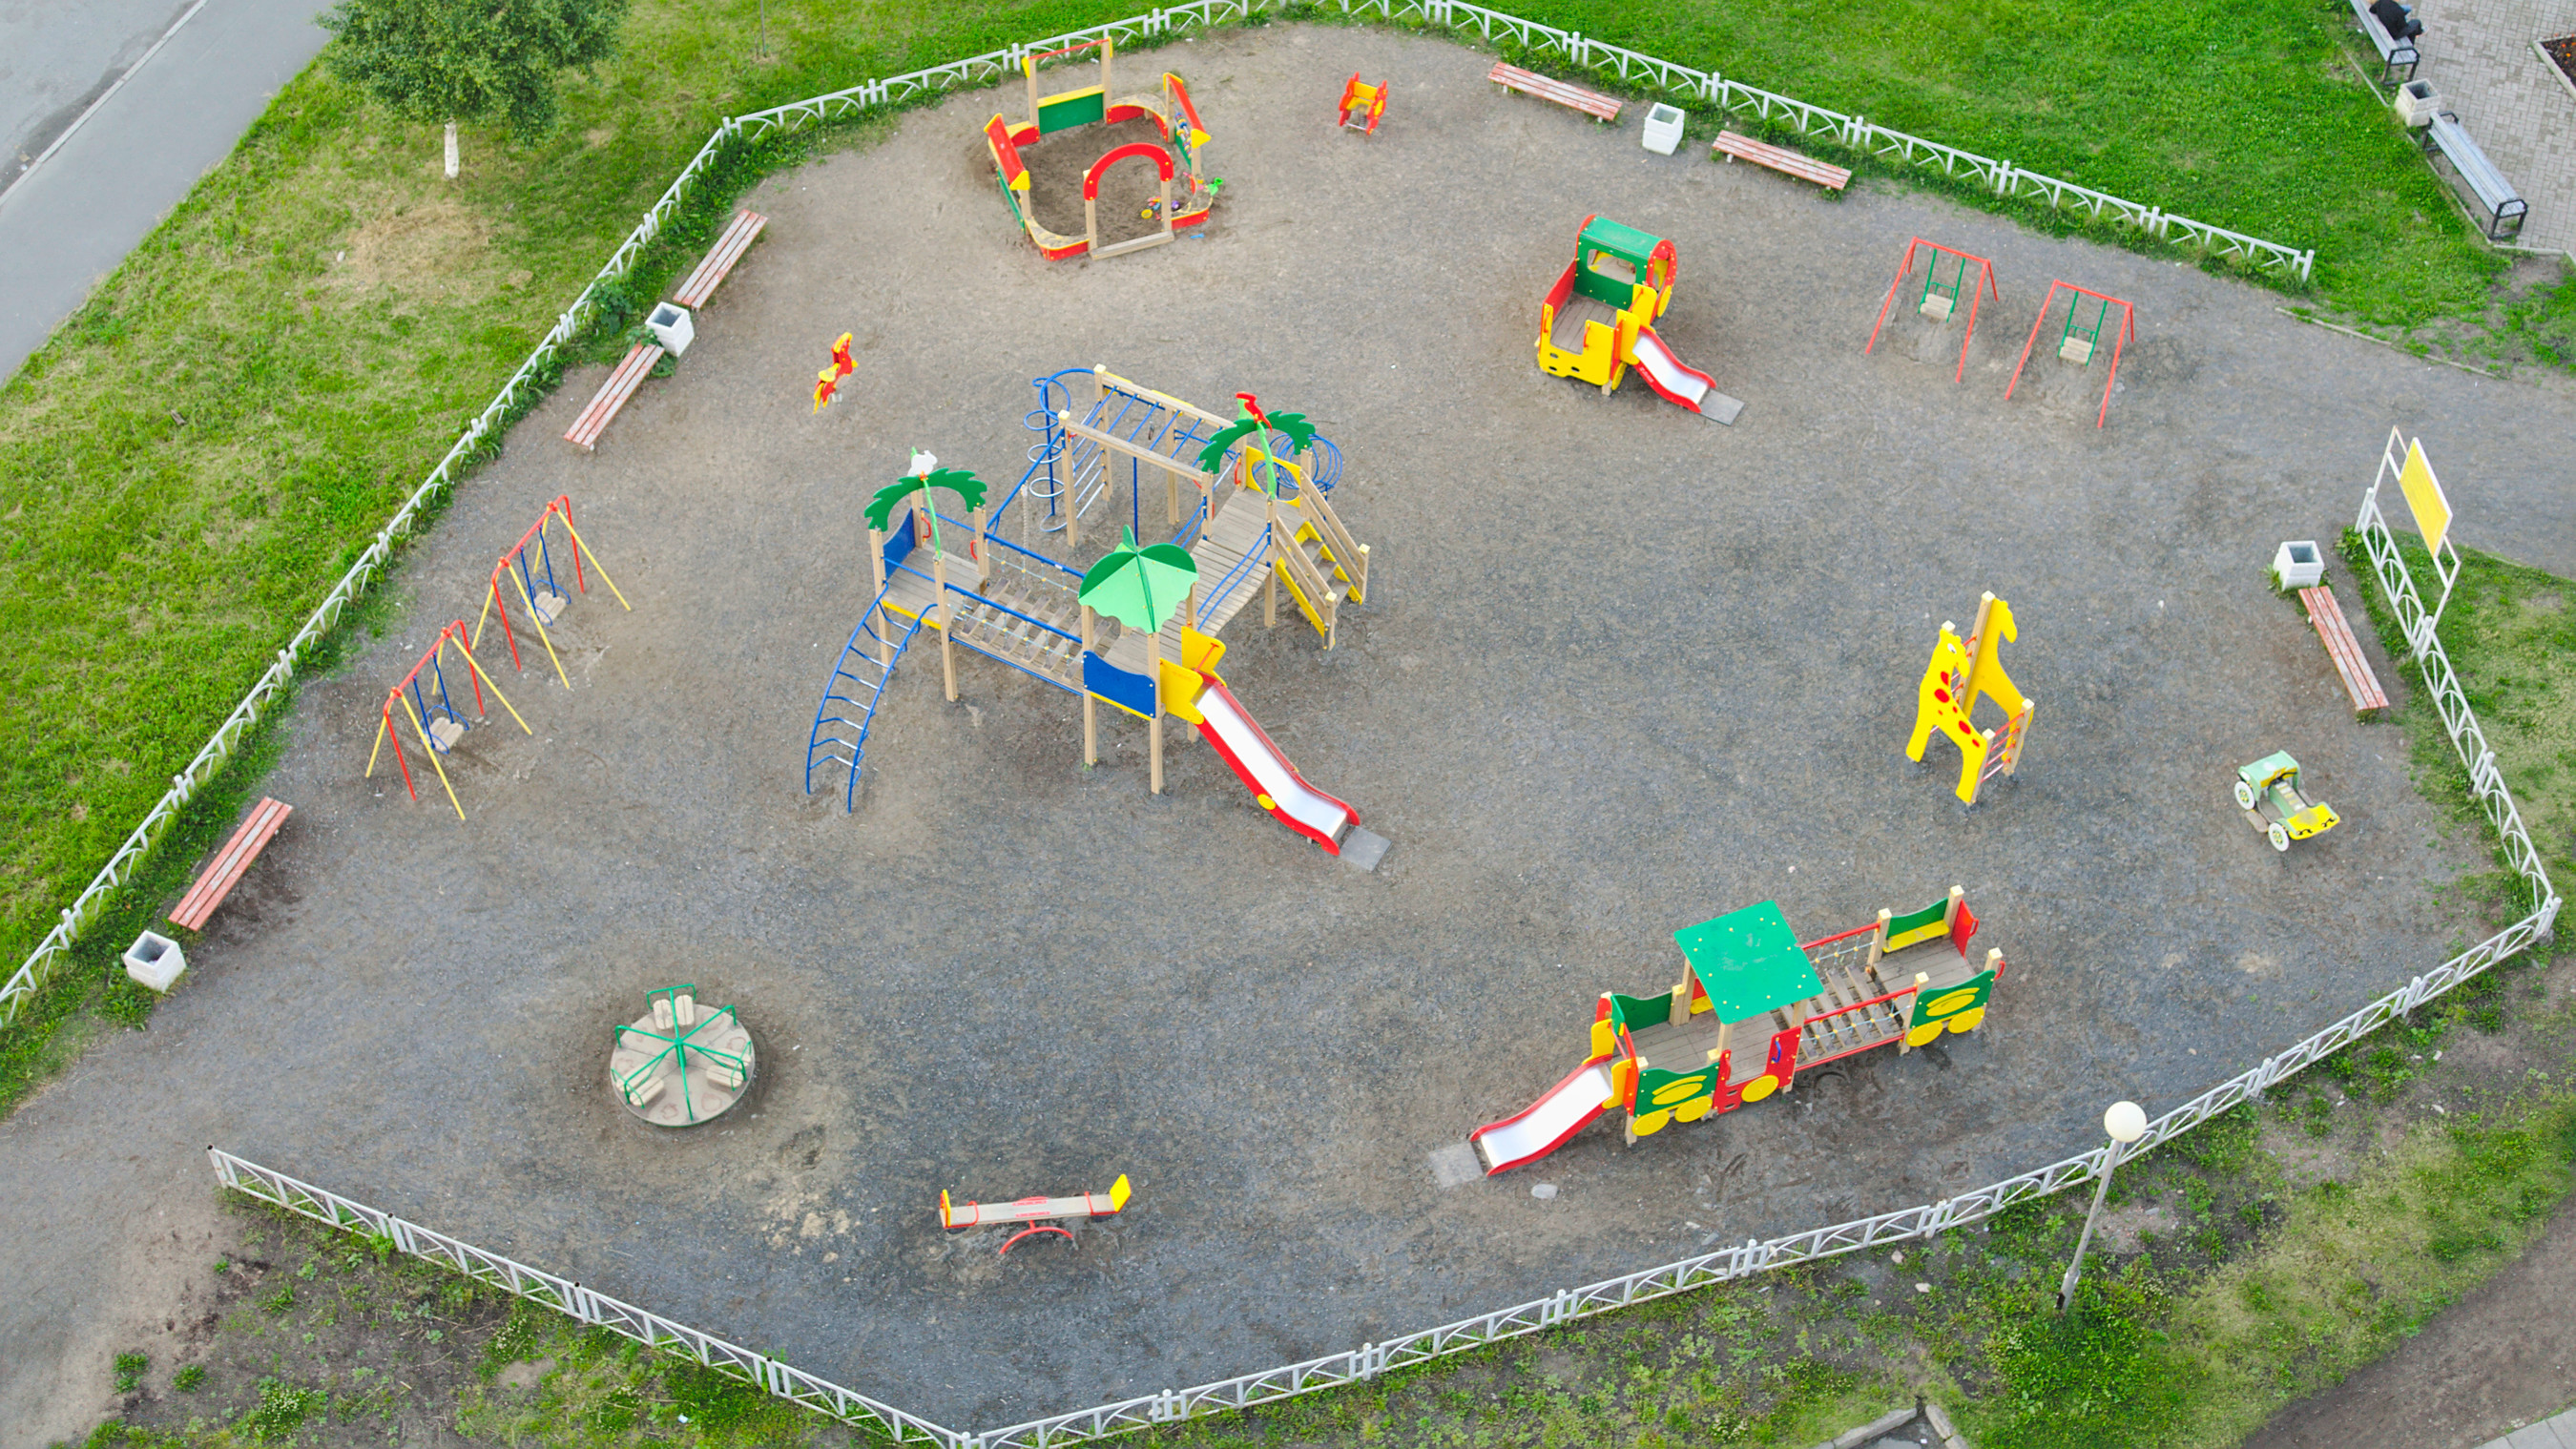 Empty playground from above photo